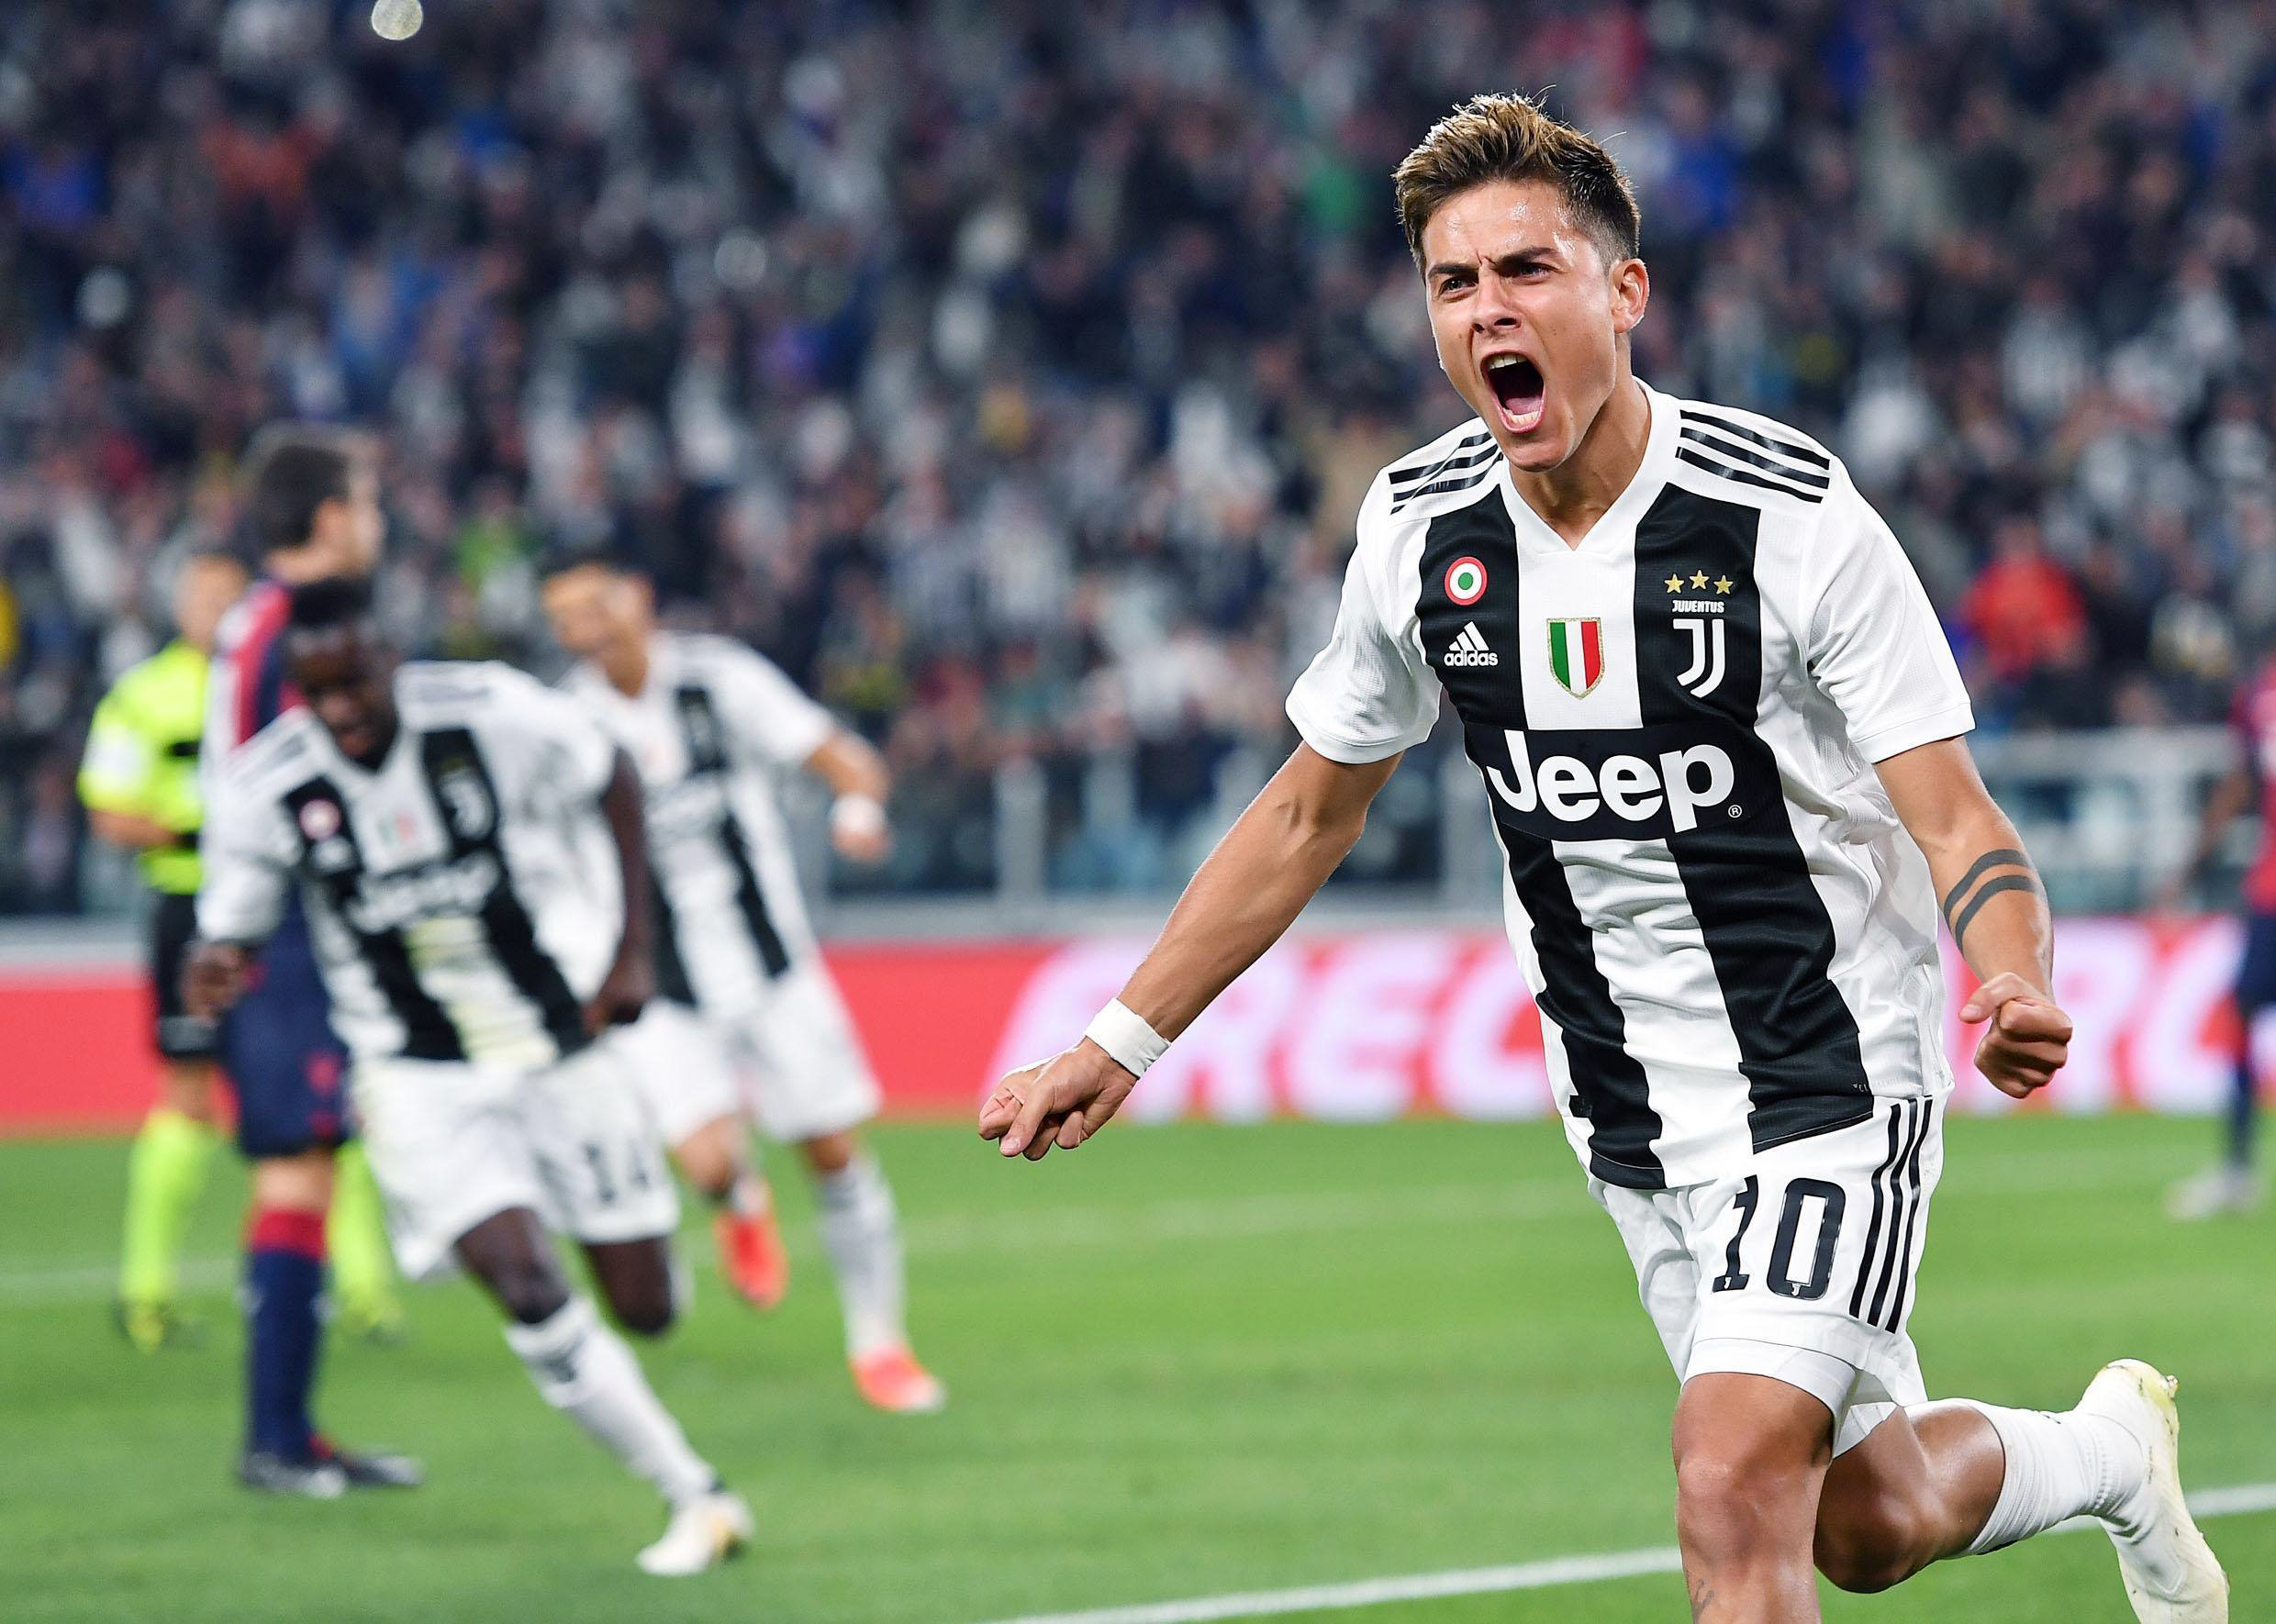 d504e0e9e Dybala breaks drought to help Juventus beat Bologna 2-0